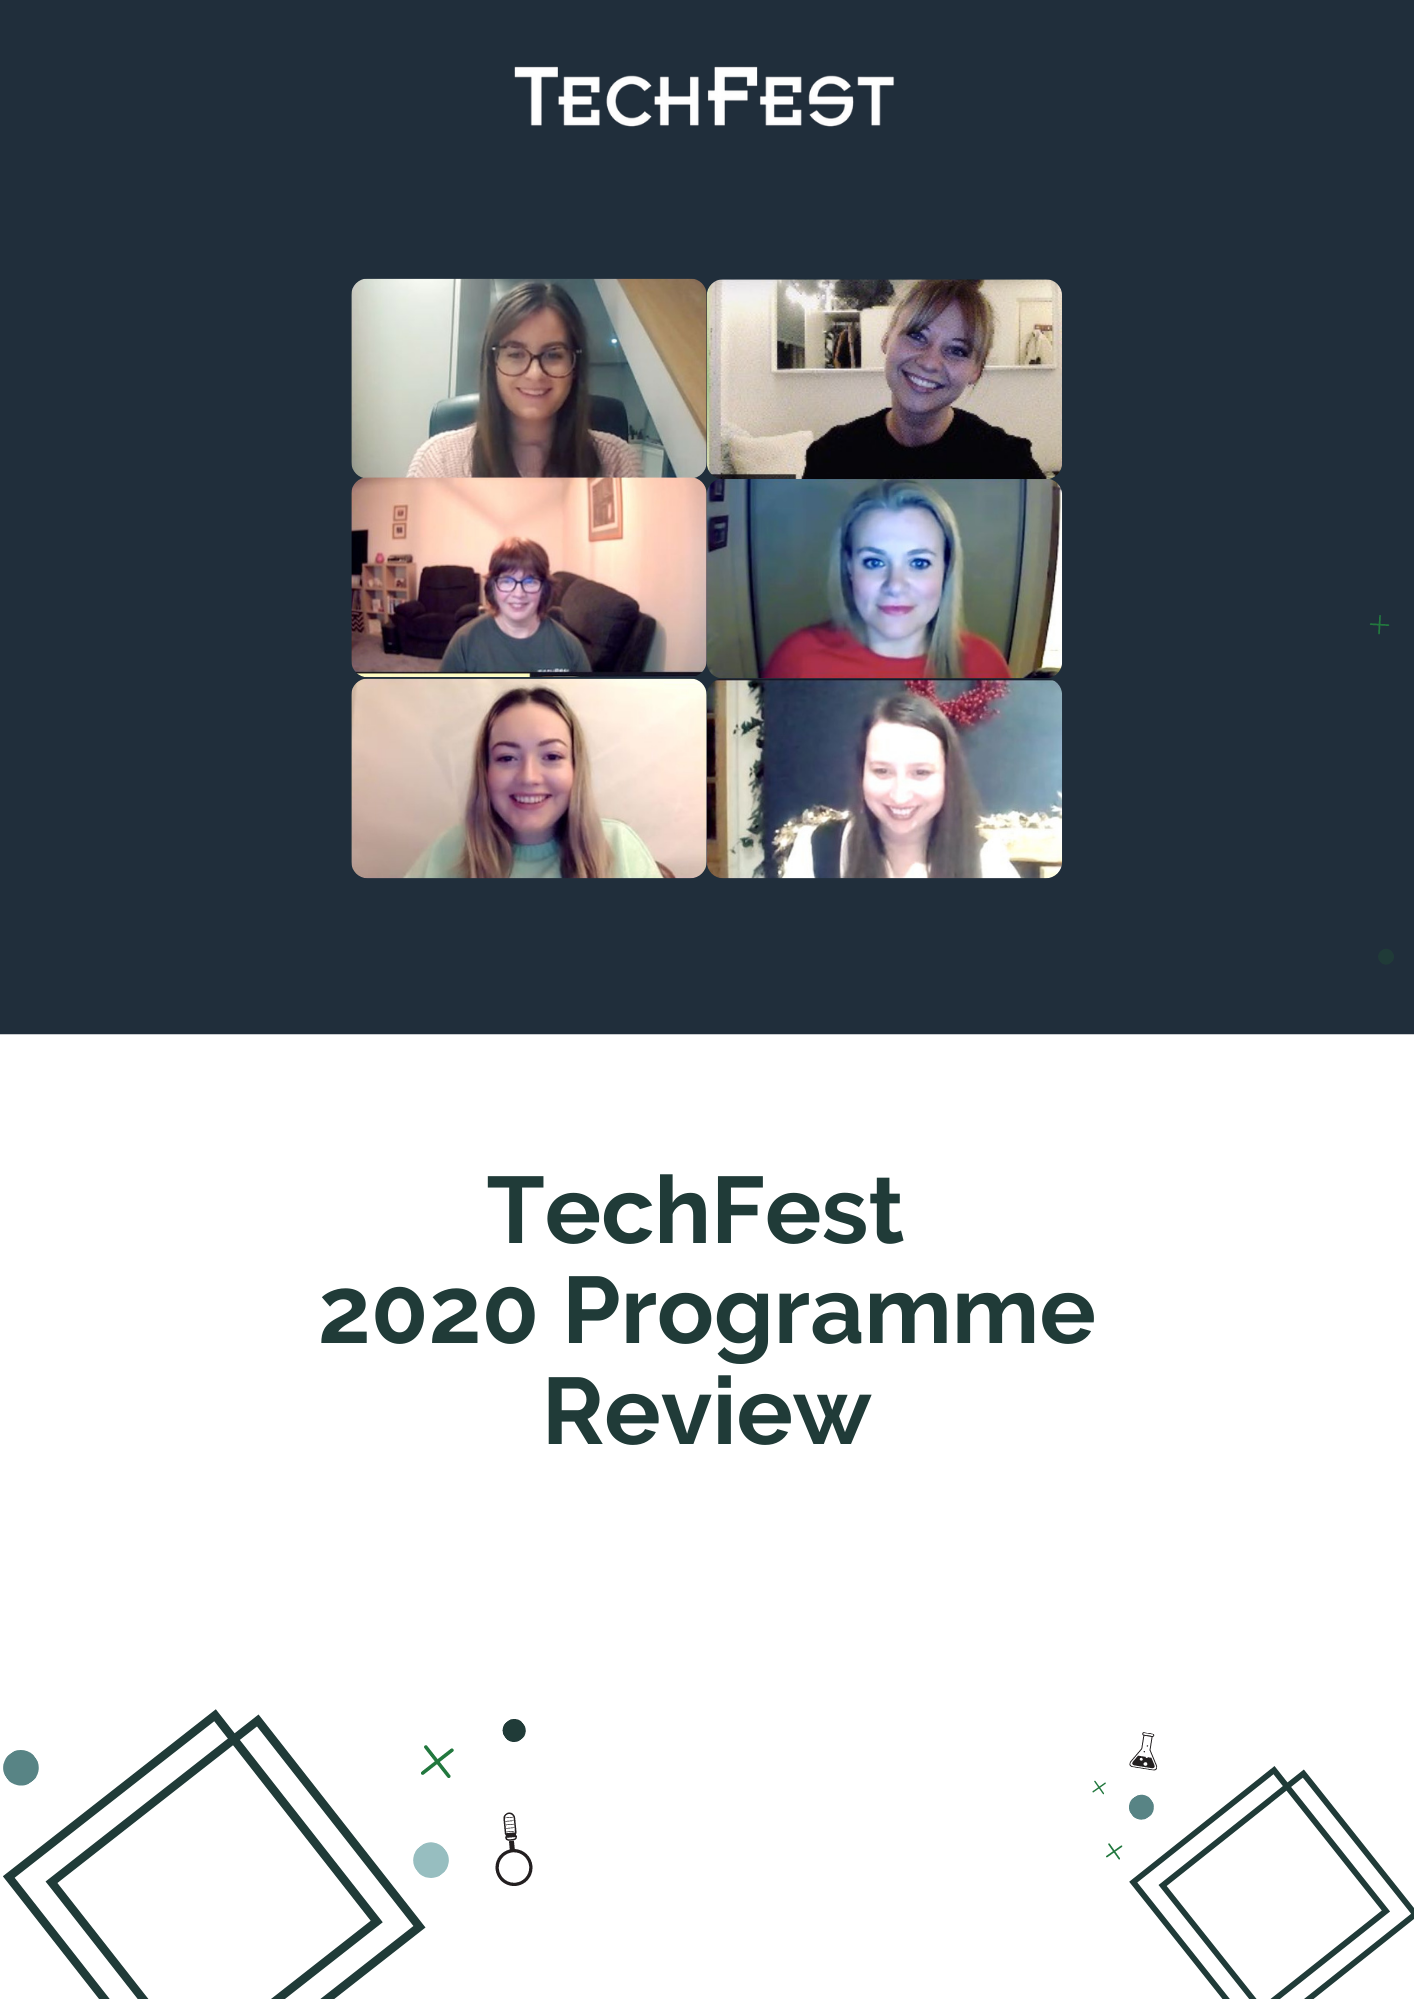 TechFest 2020 Programme Review